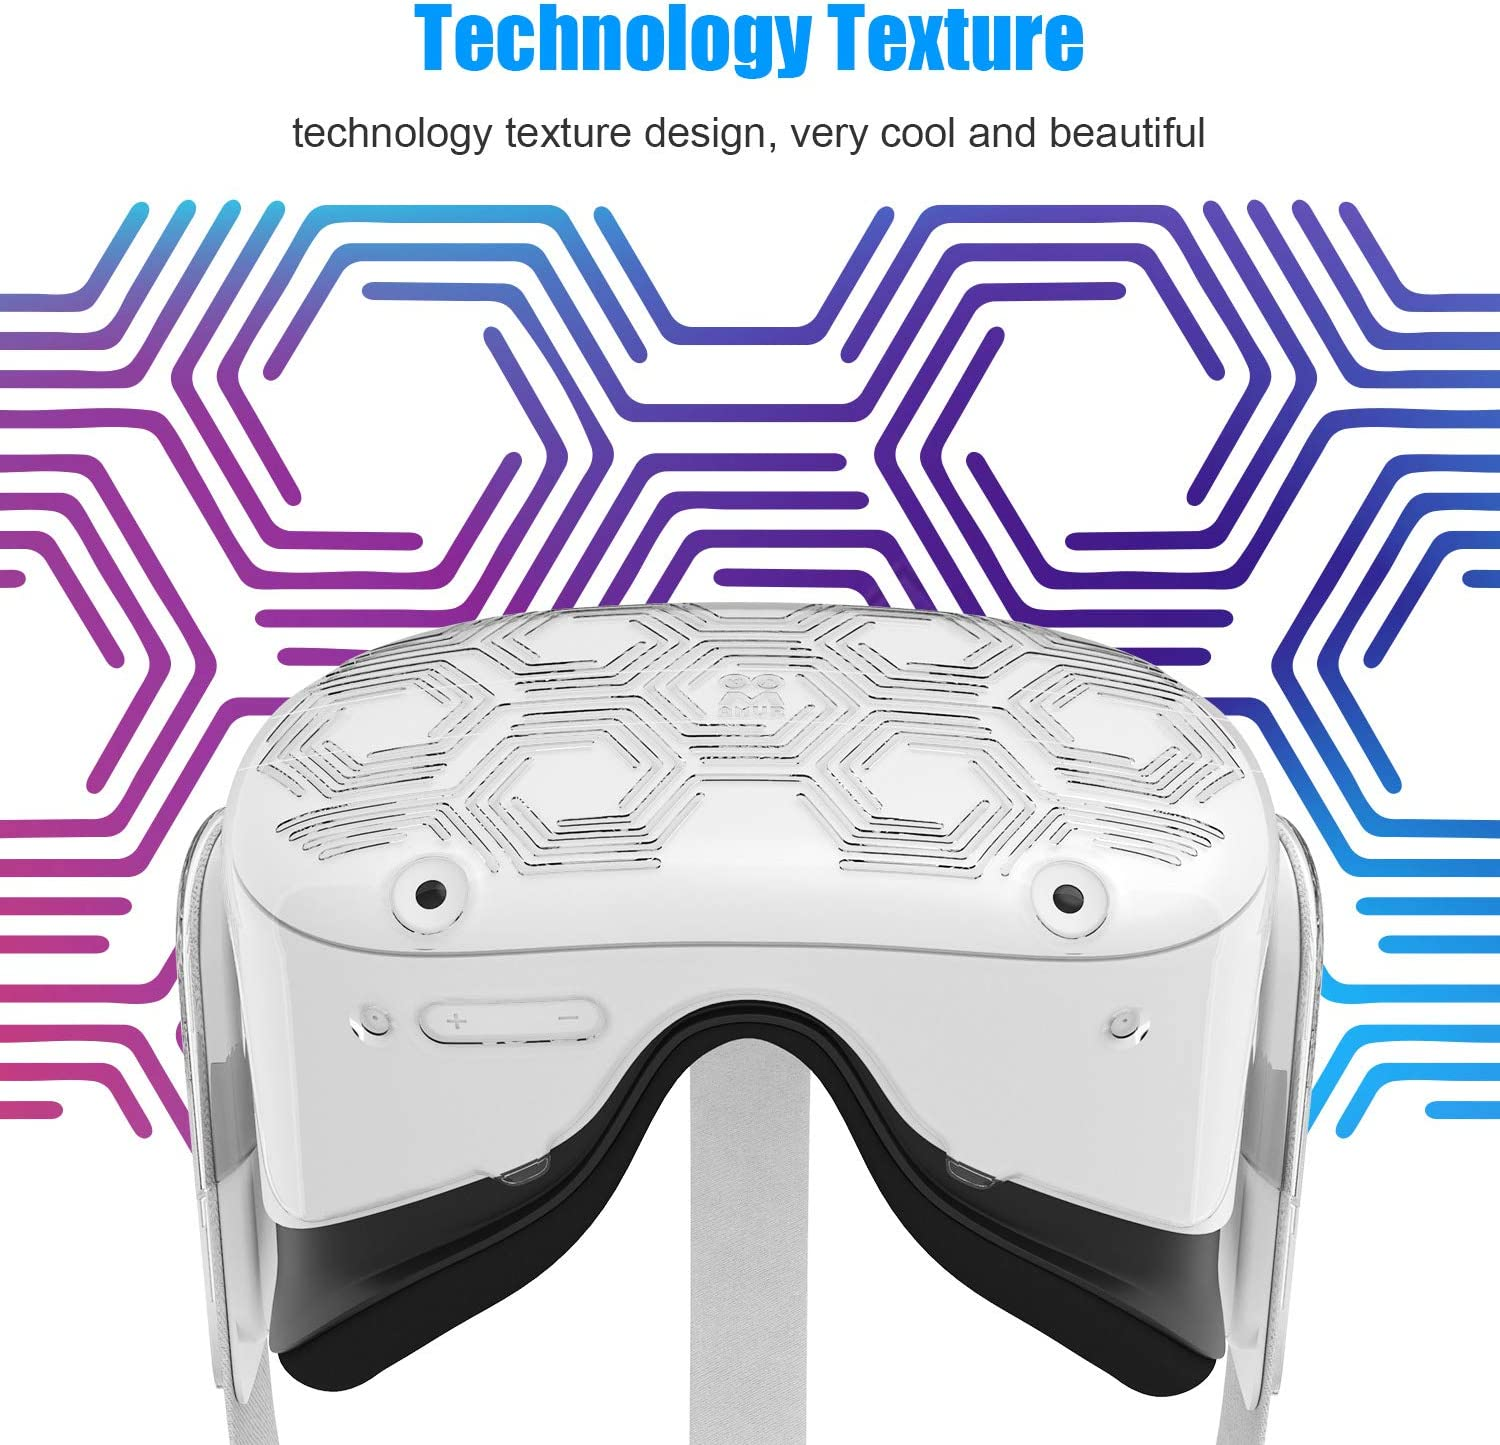 Light /& Durable Front Face Cover for Oculus Quest 2 Accessories Black AMVR VR Headset Protective Shell Preventing Collisions and Scratches